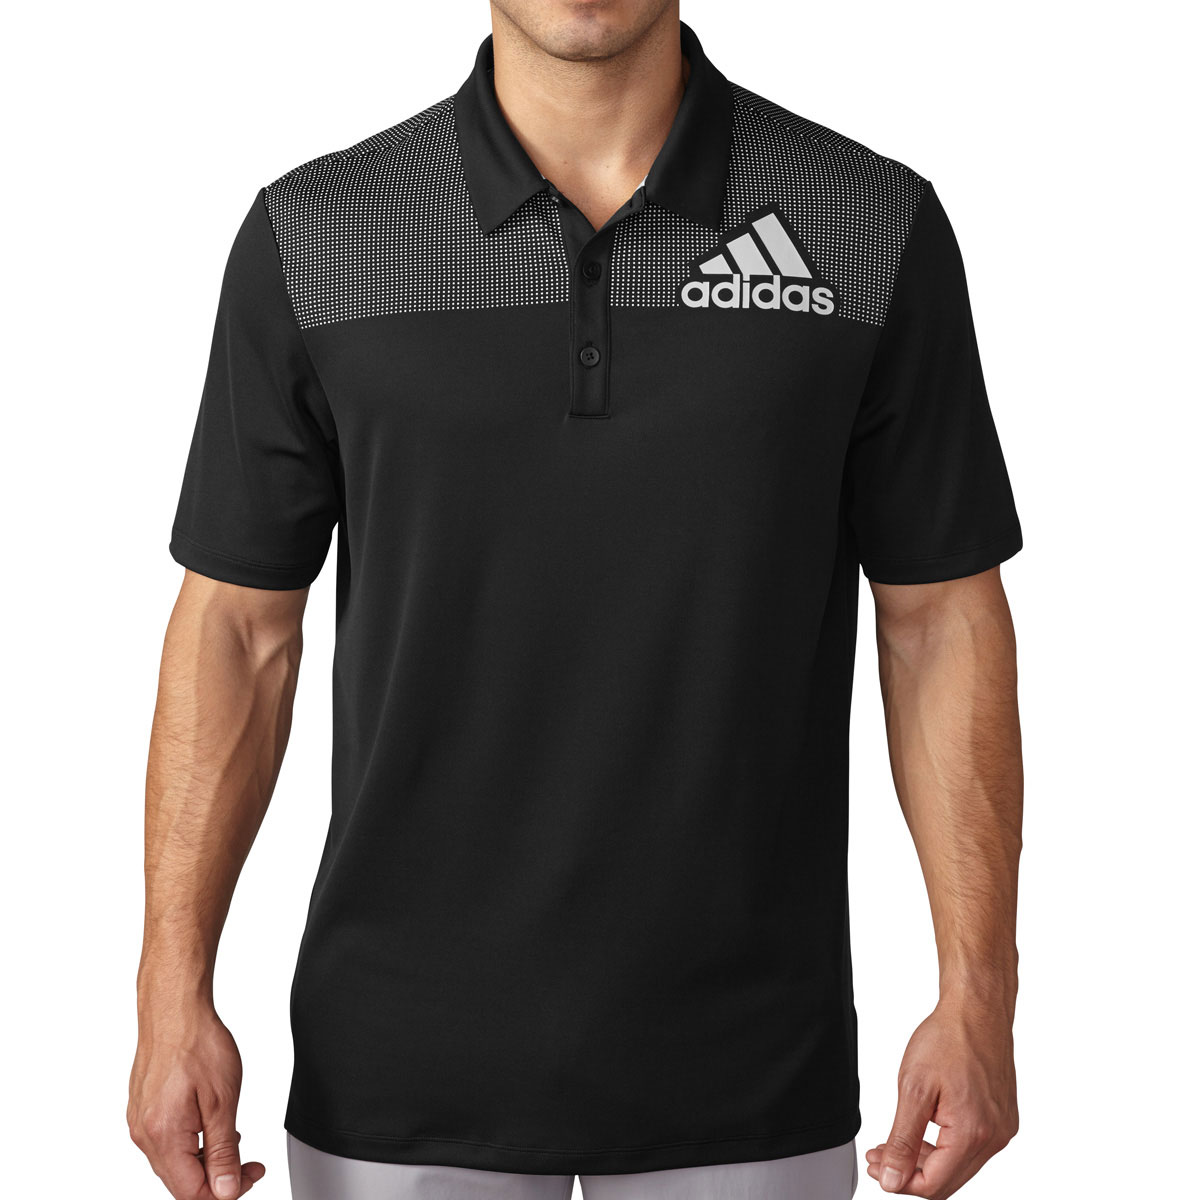 Adidas Golf 2016 Mens Big Logo Dot Print Polo Shirt Quick